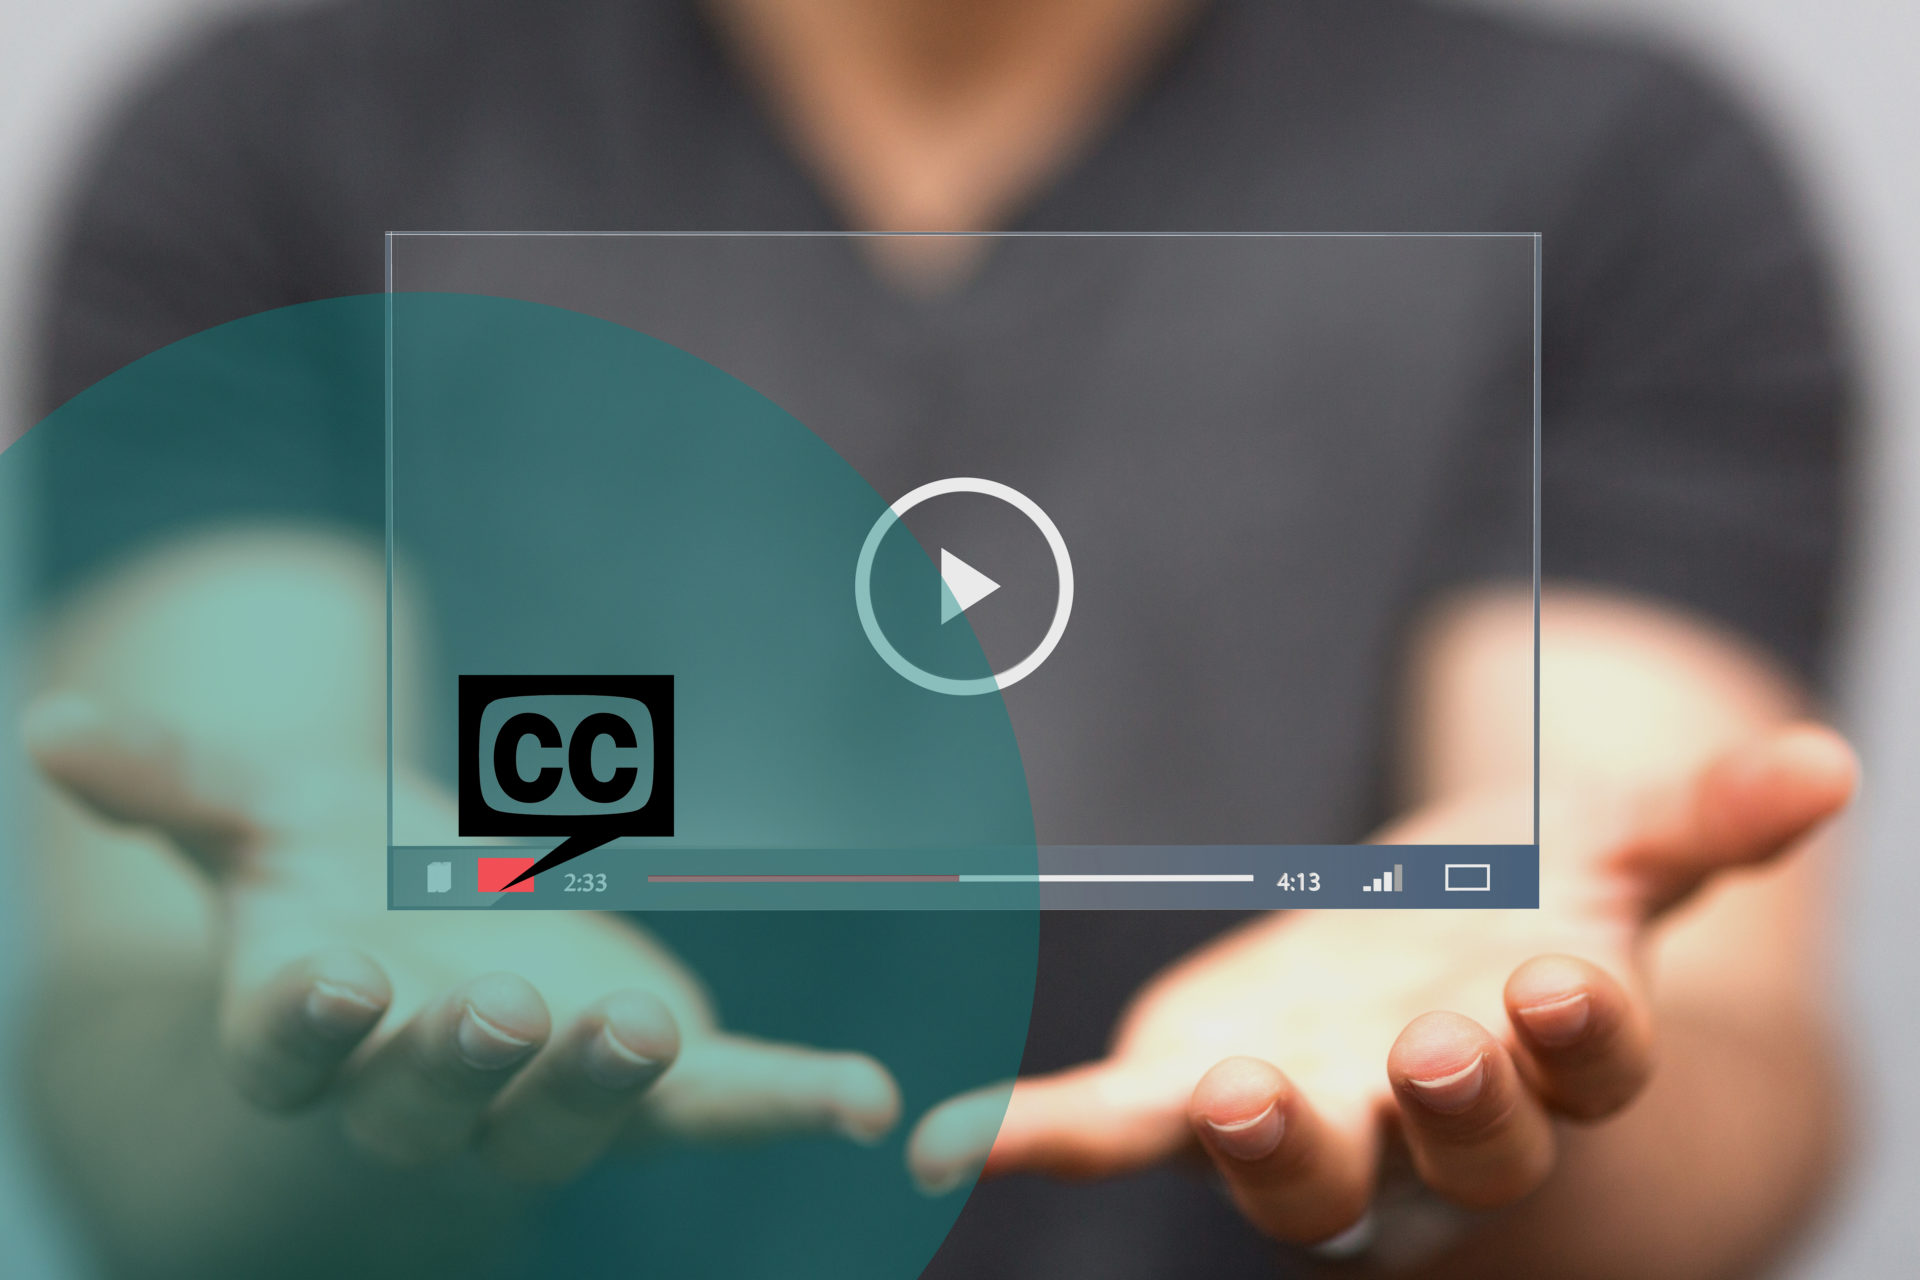 Background image of person with outstretched hands, palms upturned. Outline of closed captioned video in foreground.